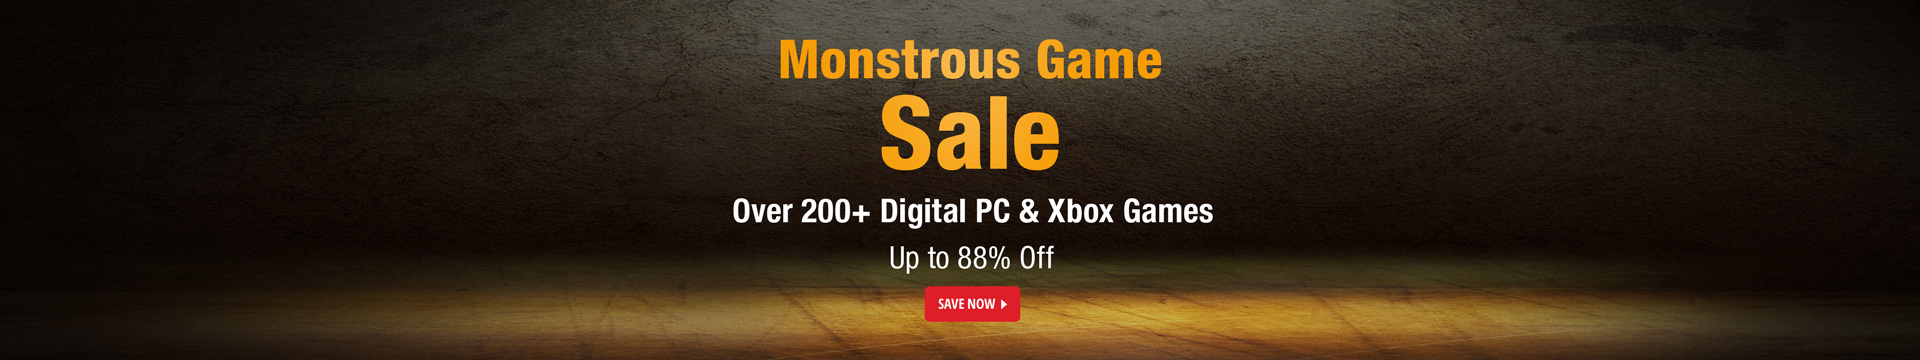 Monstrous Game Sale